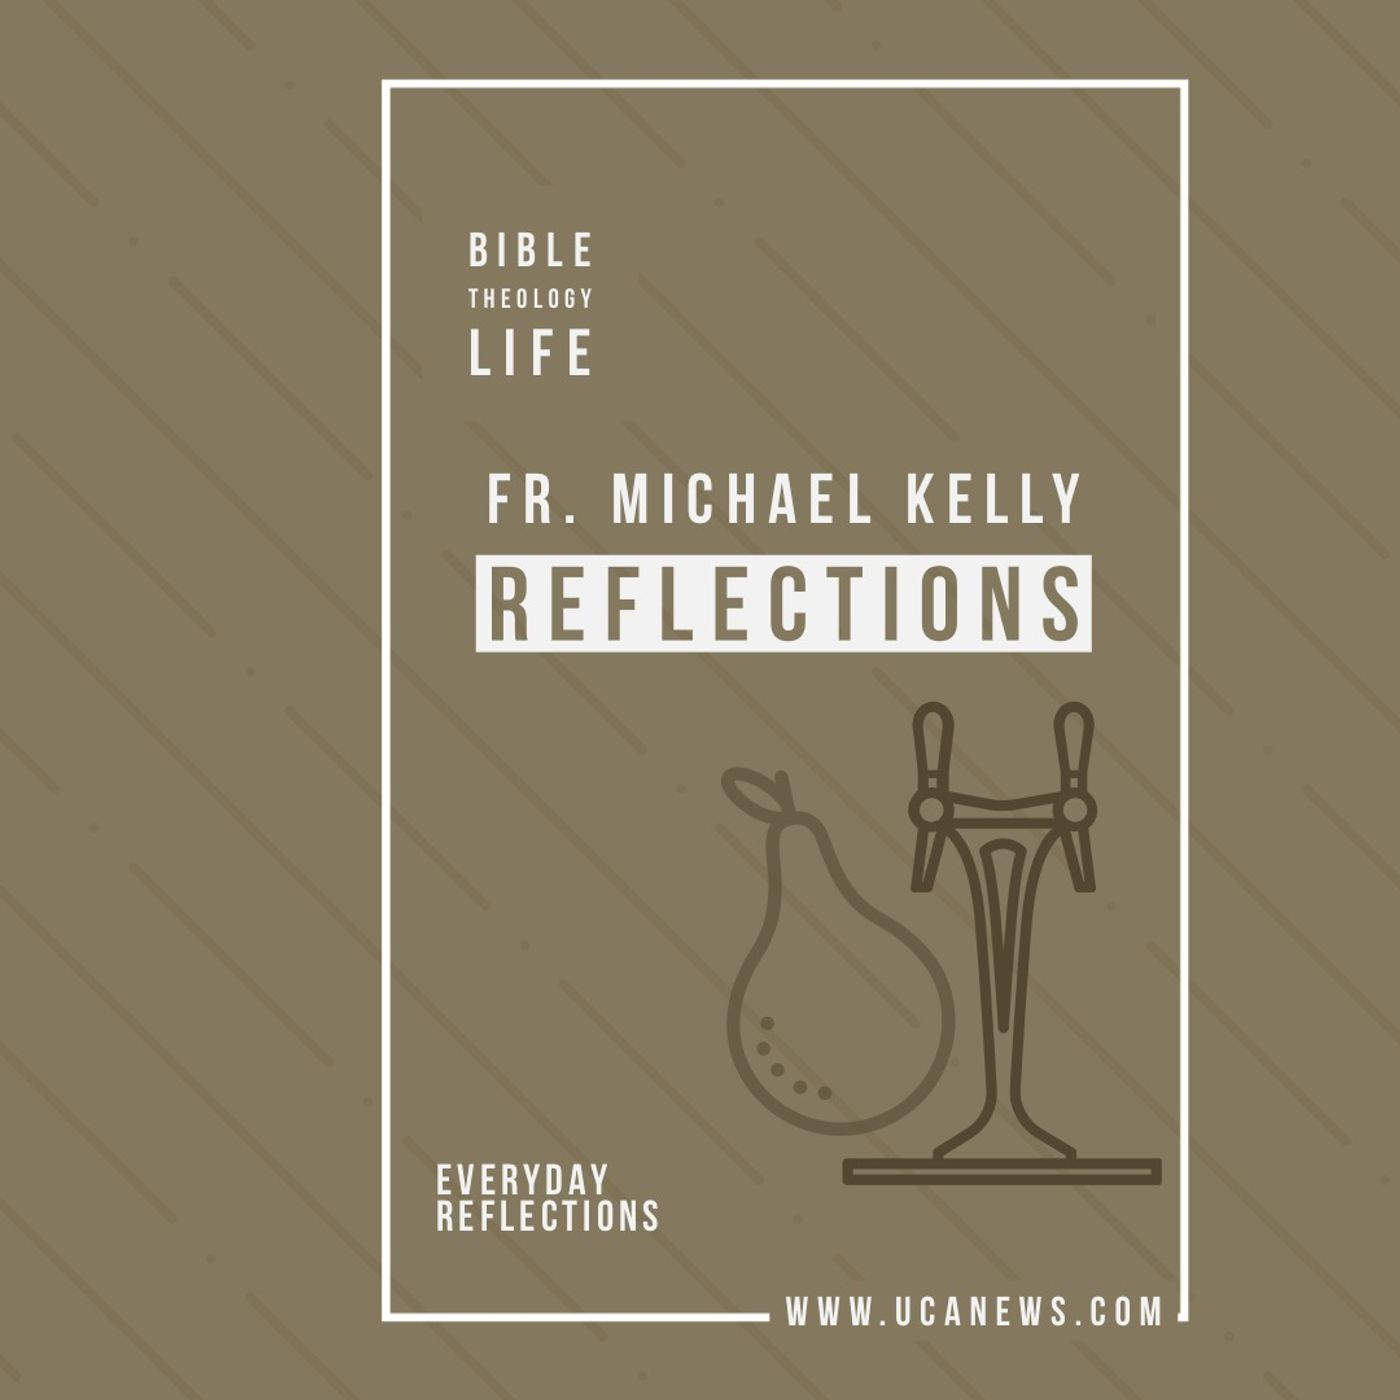 Reflections with Fr. Michael Kelly - Sunday 9 May, 2021